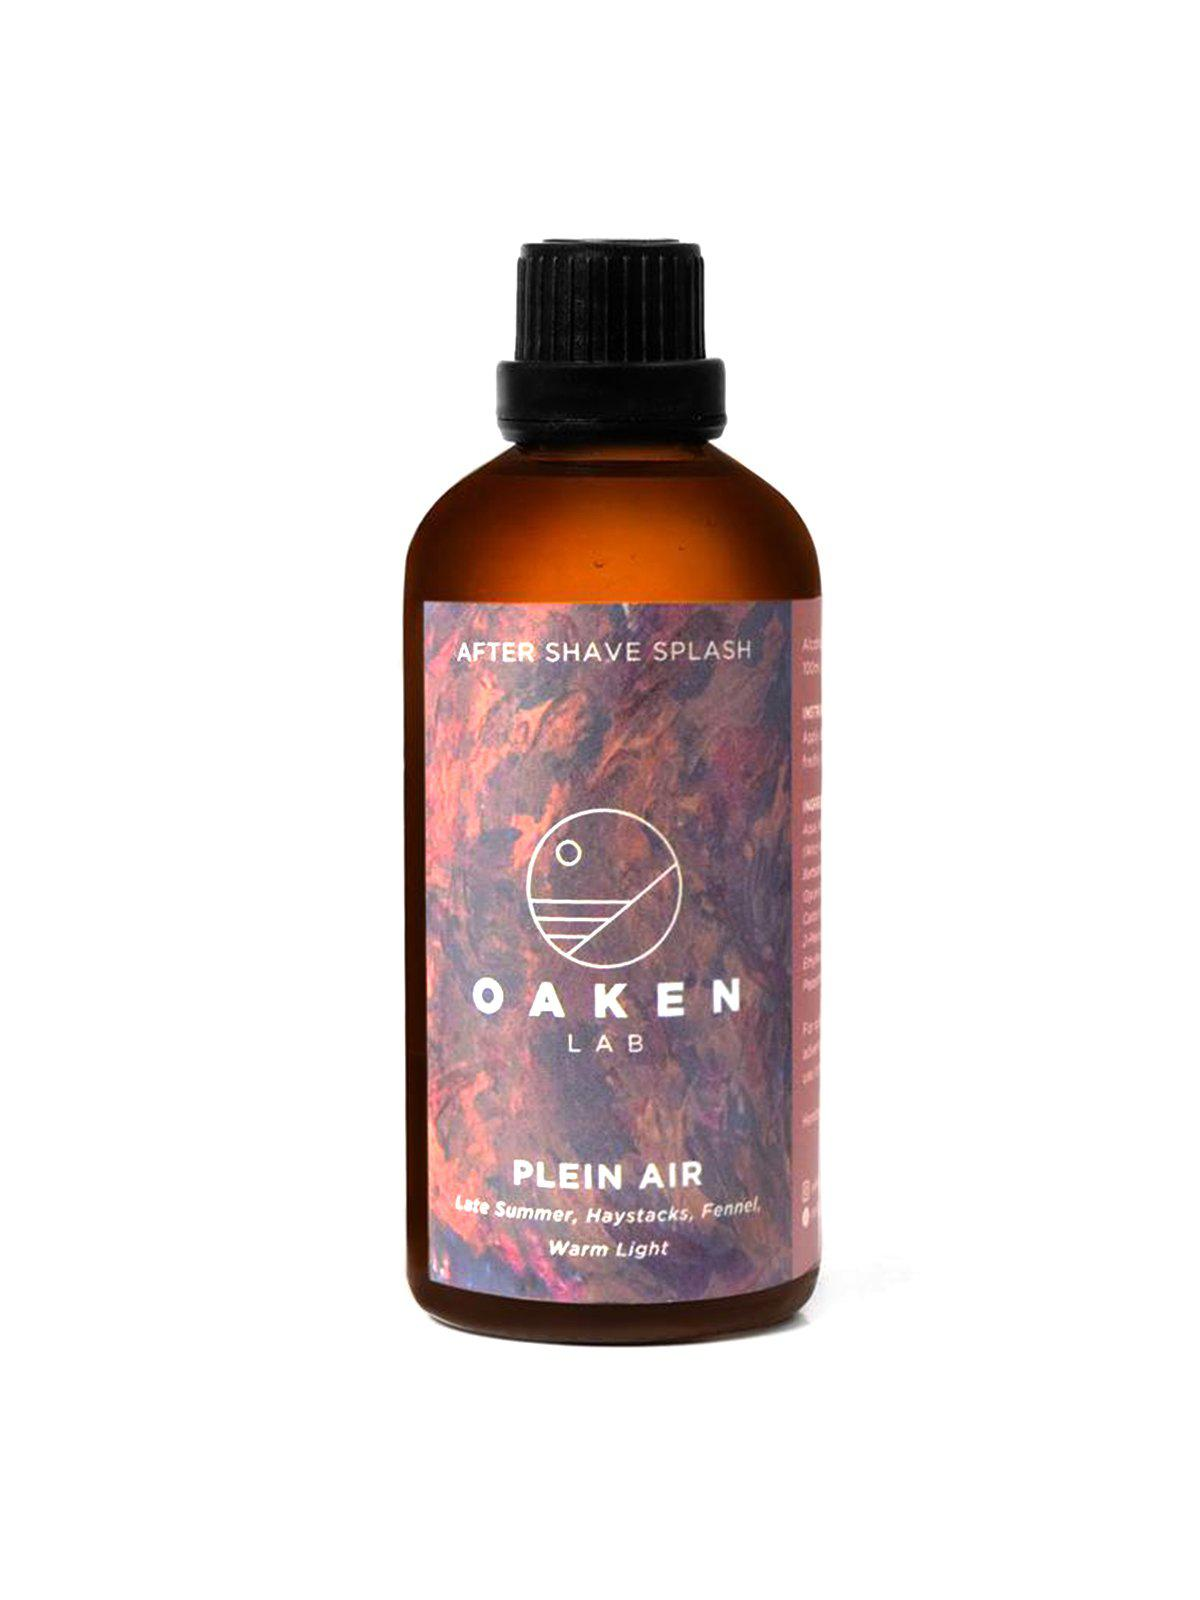 Oaken Lab Aftershave Splash Plein Air 100ml - MORE by Morello Indonesia